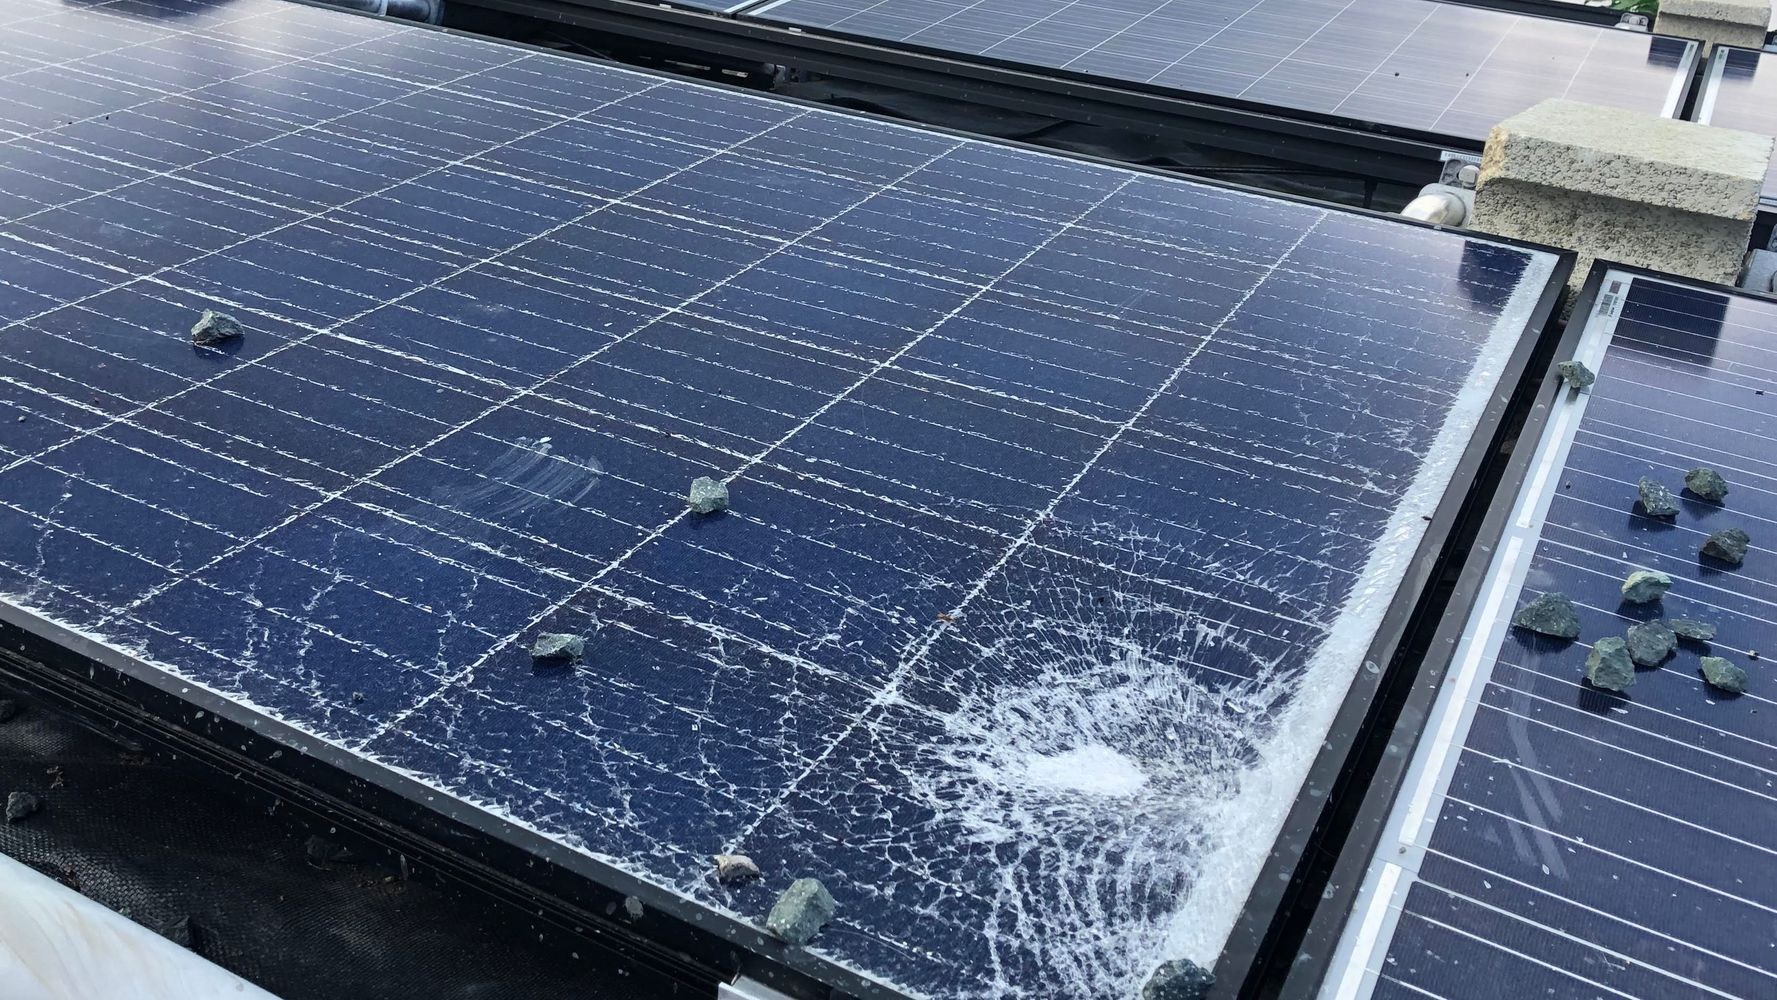 On Puerto Rico's 'Forgotten Island,' Tesla's Busted Solar Panels